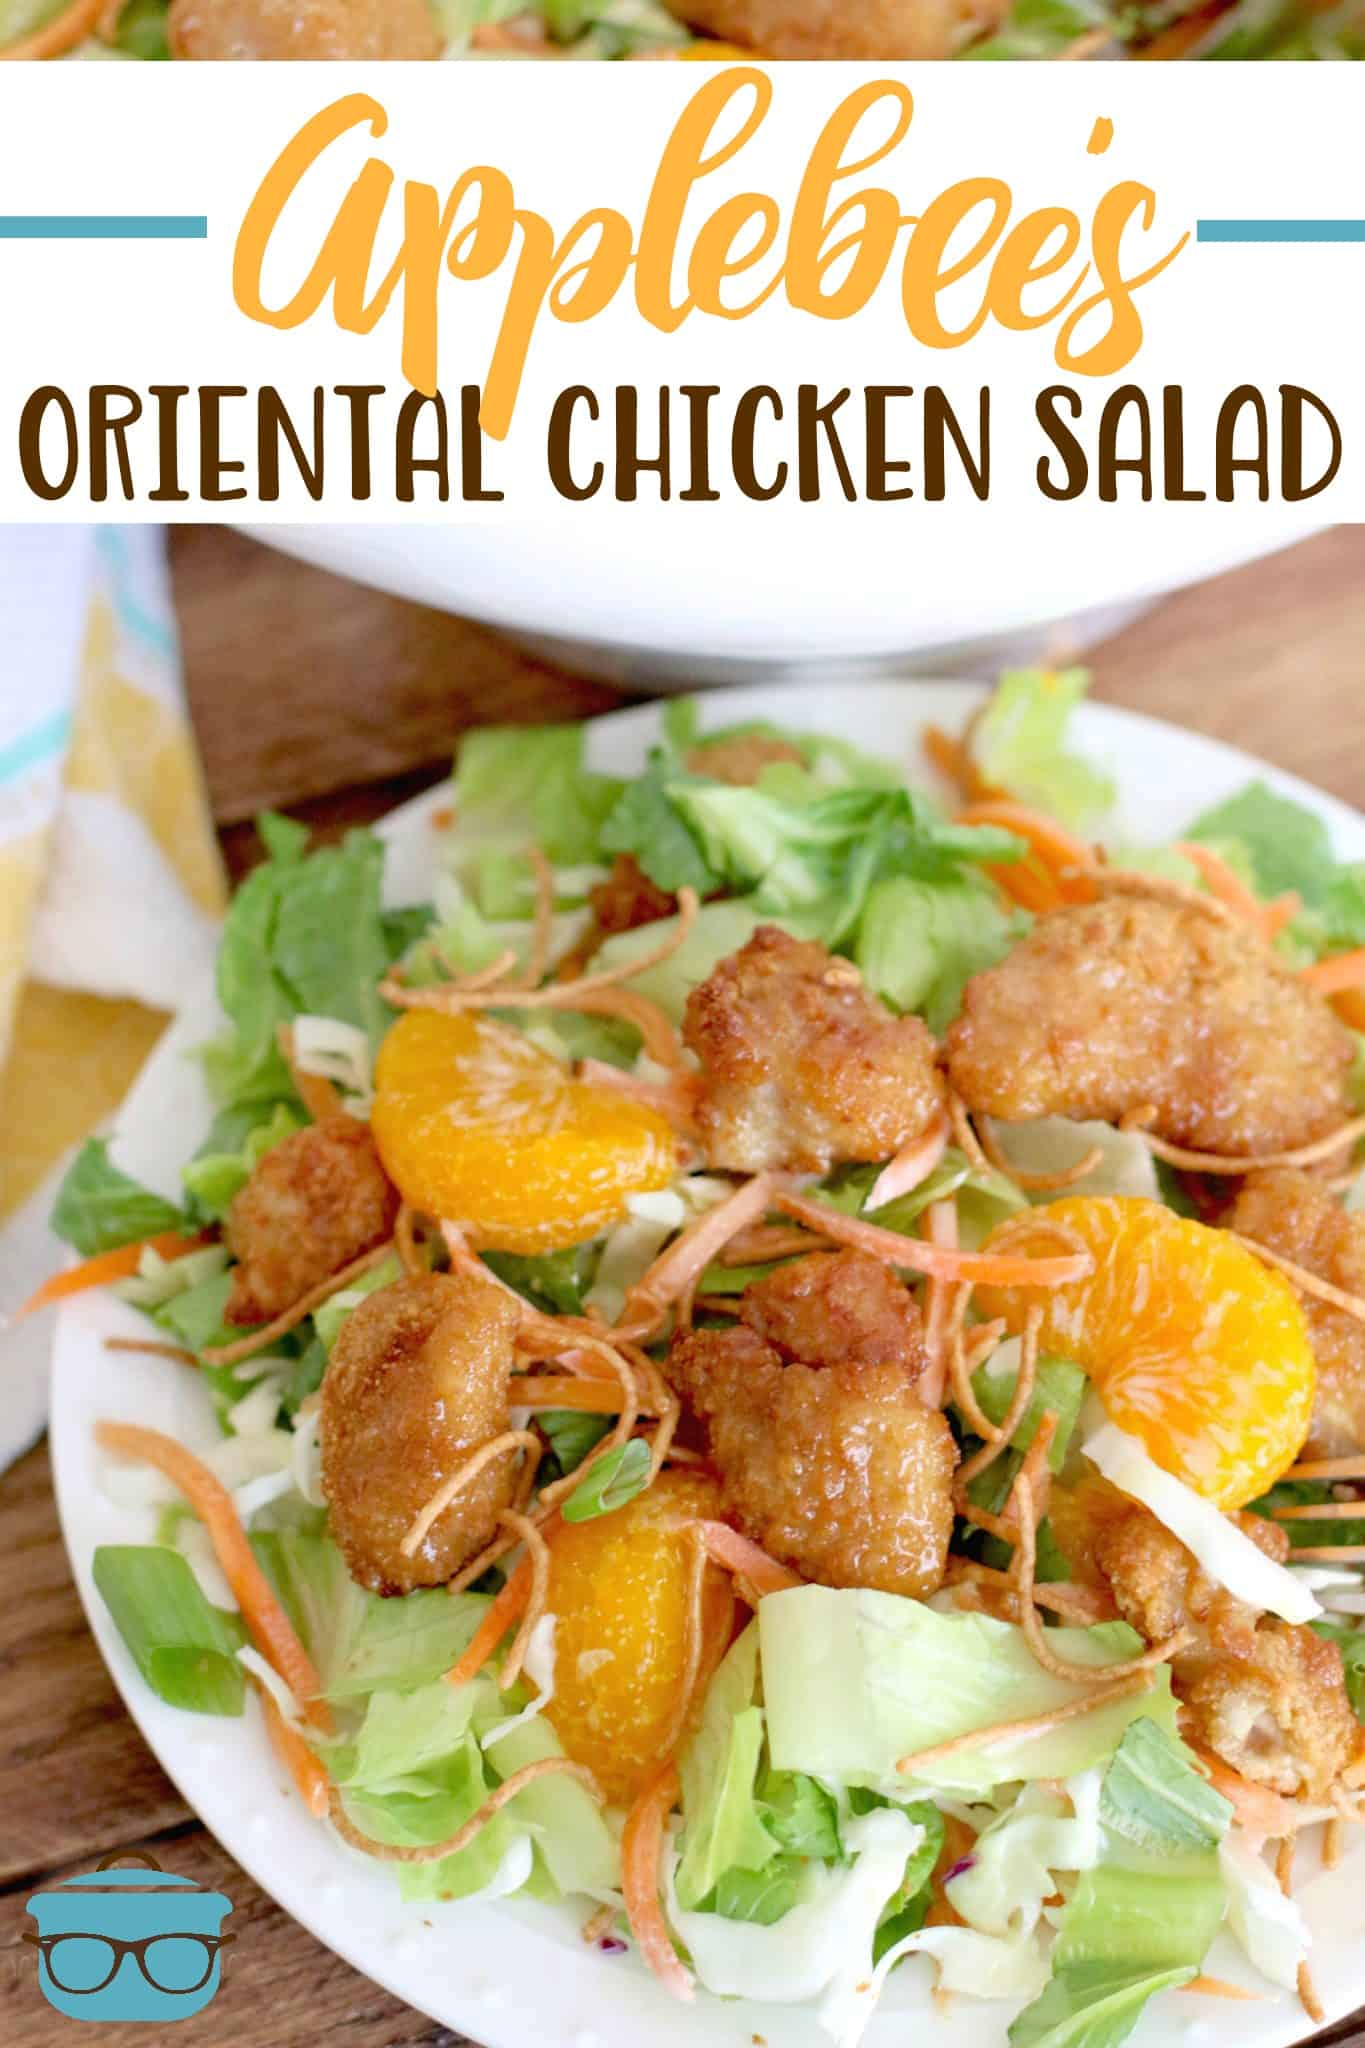 Copycat Applebee's Oriental Chicken Salad is full of chunks of chicken, mandarin oranges and the most scrumptious dressing ever!